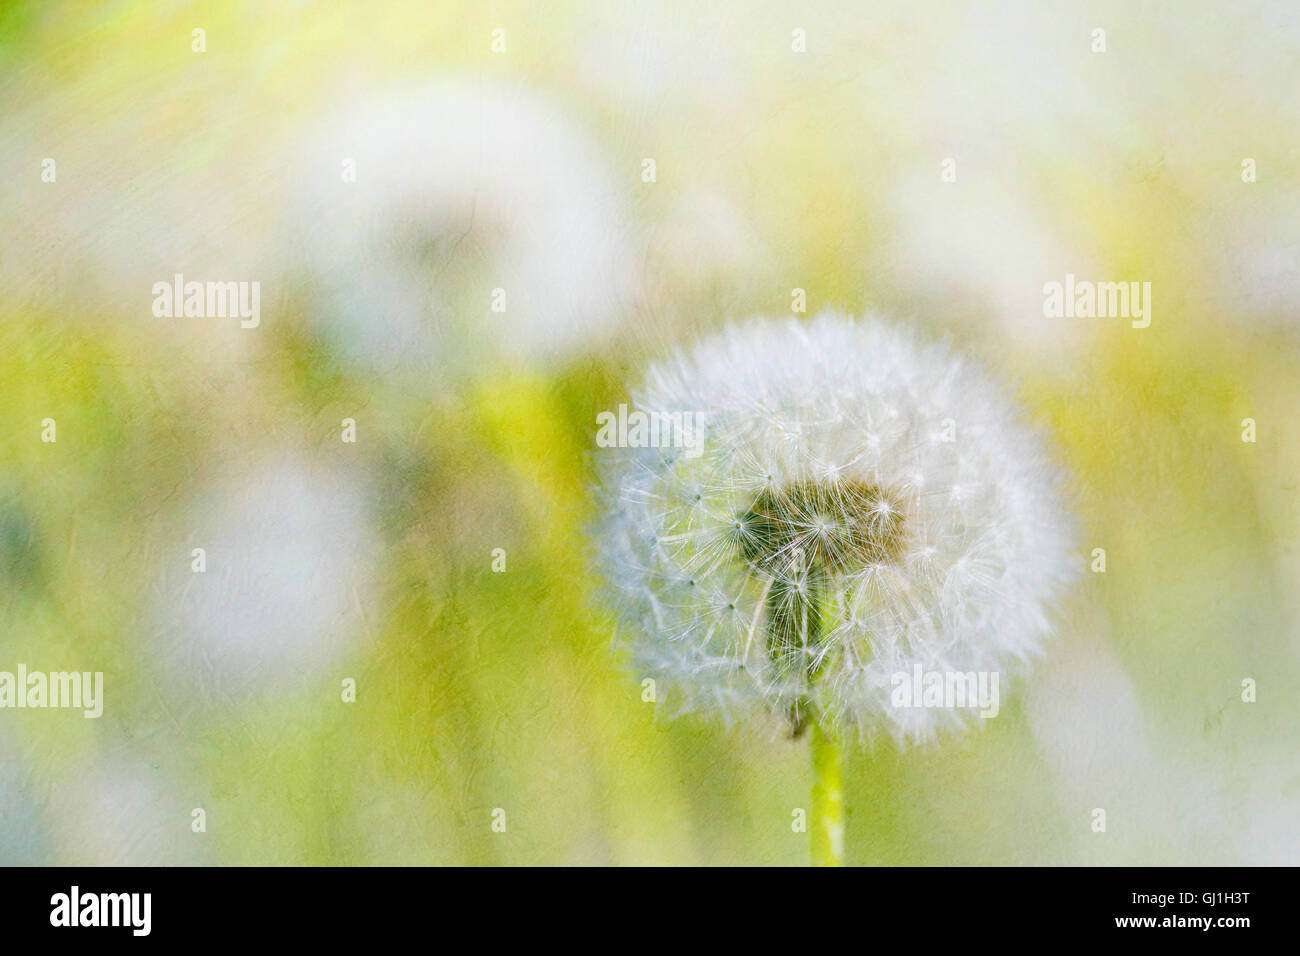 Dandelions with an applied painterly texture effect. - Stock Image